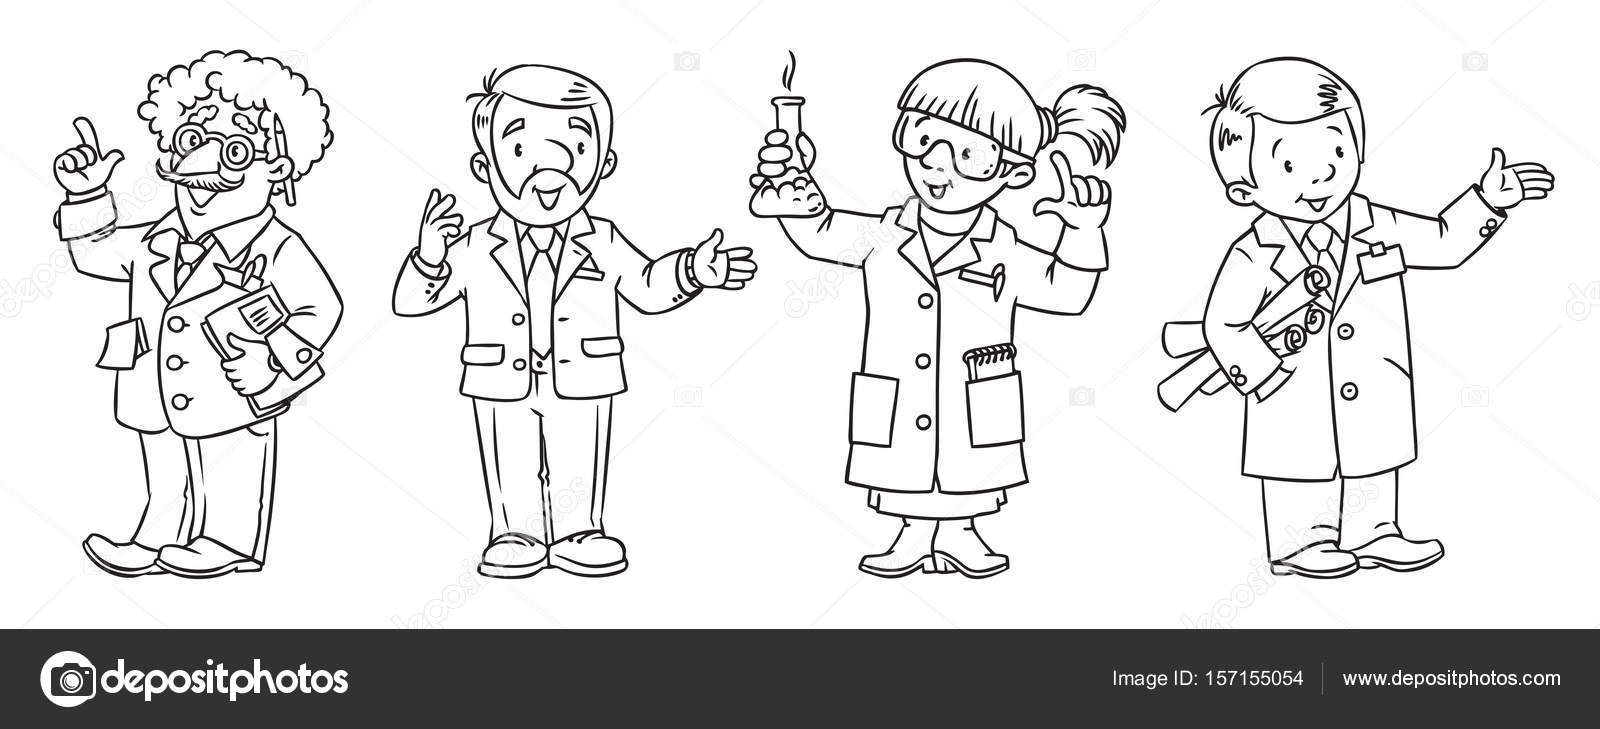 coloring book set of funny scientist or inventor univercity lecturer chemist and engeneer profession series childrens vector illustration - Science Coloring Book